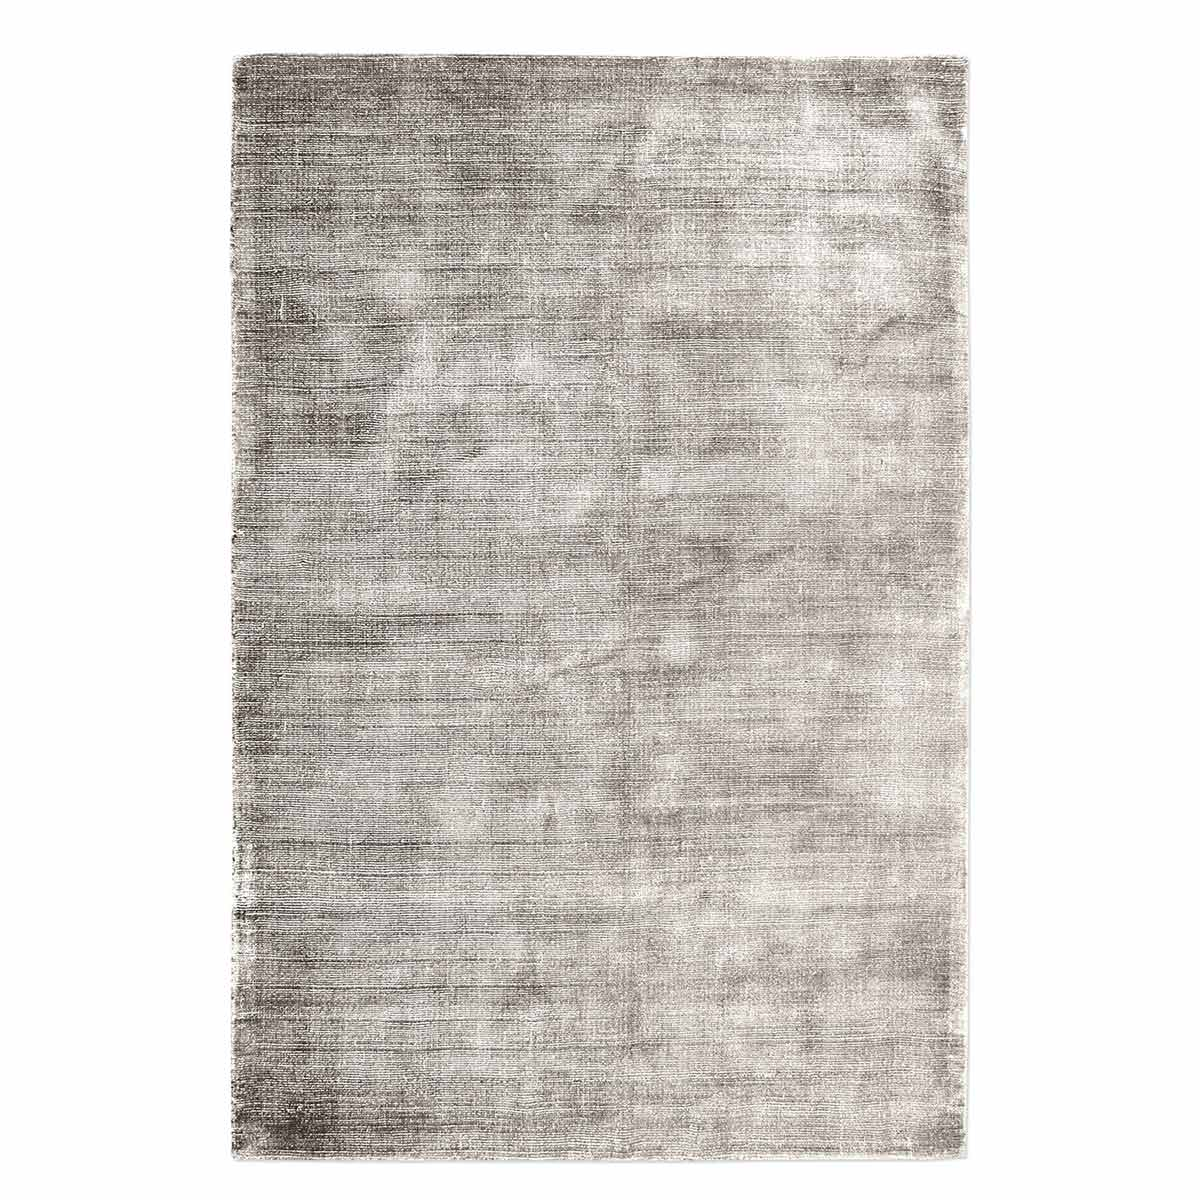 Uttermost Messini 5 x 8 Rug - Beige